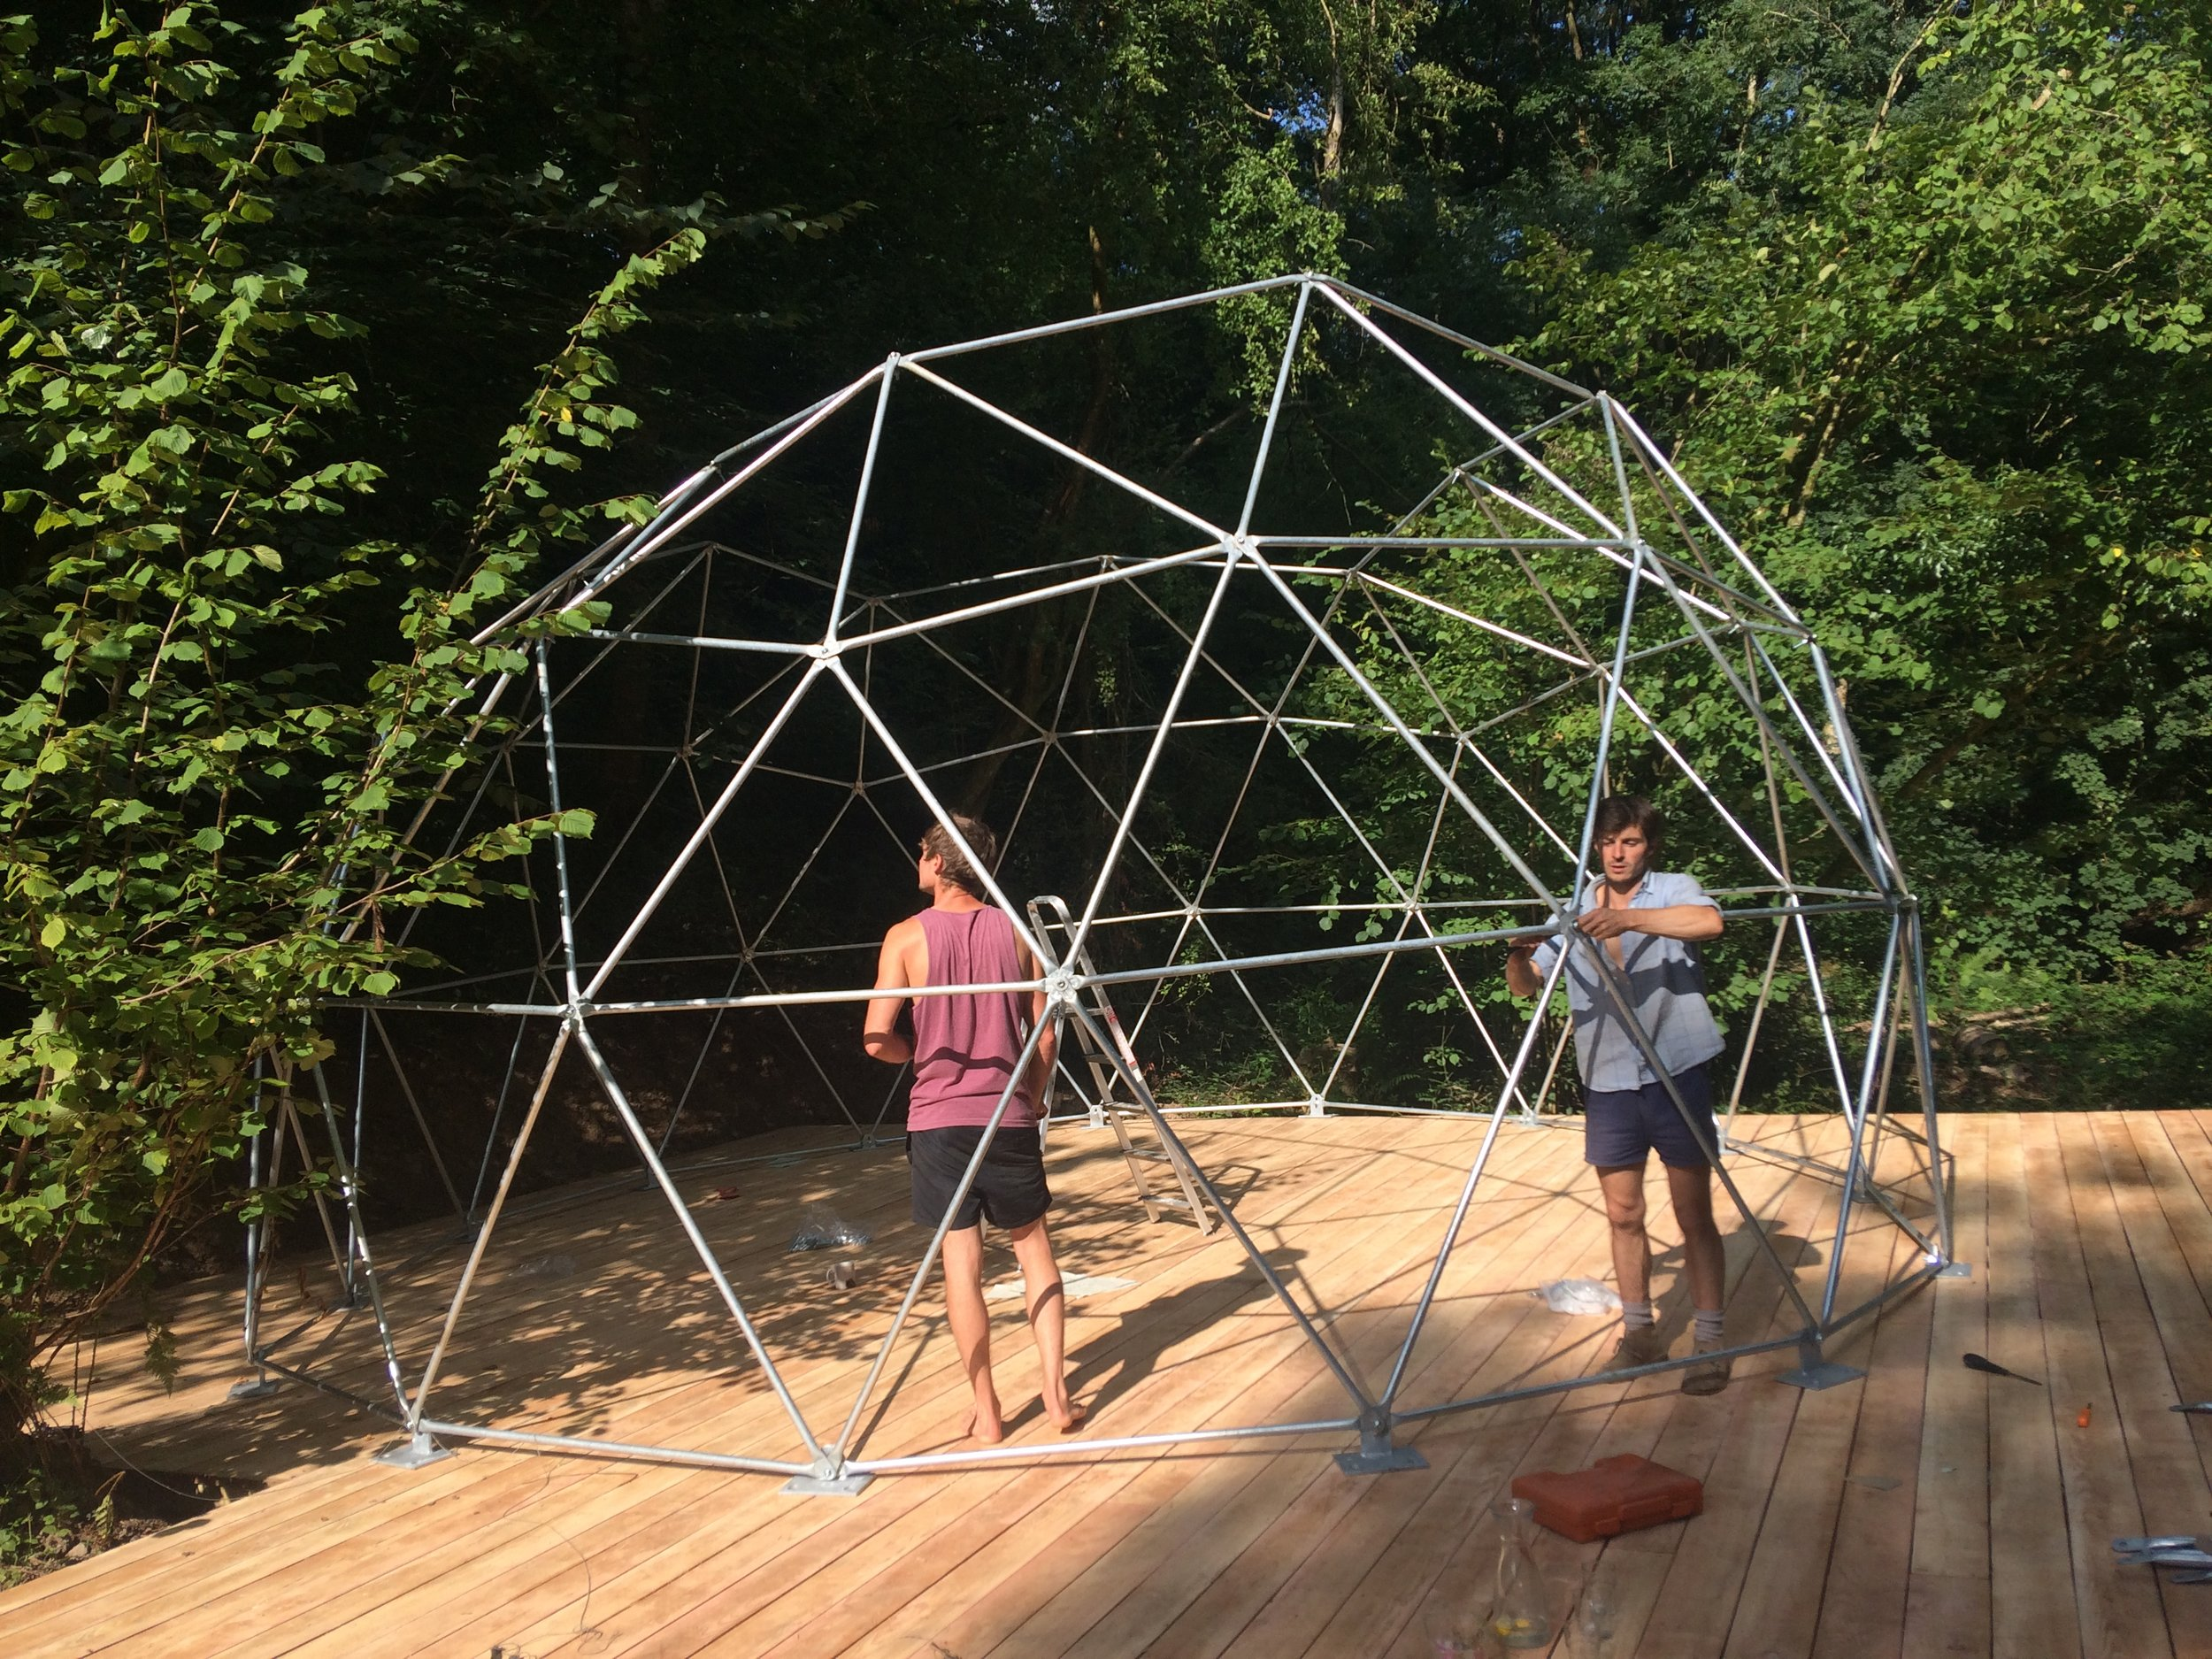 05.08.18 - Structure almost done! (Cheers Rob- you're a super star!)